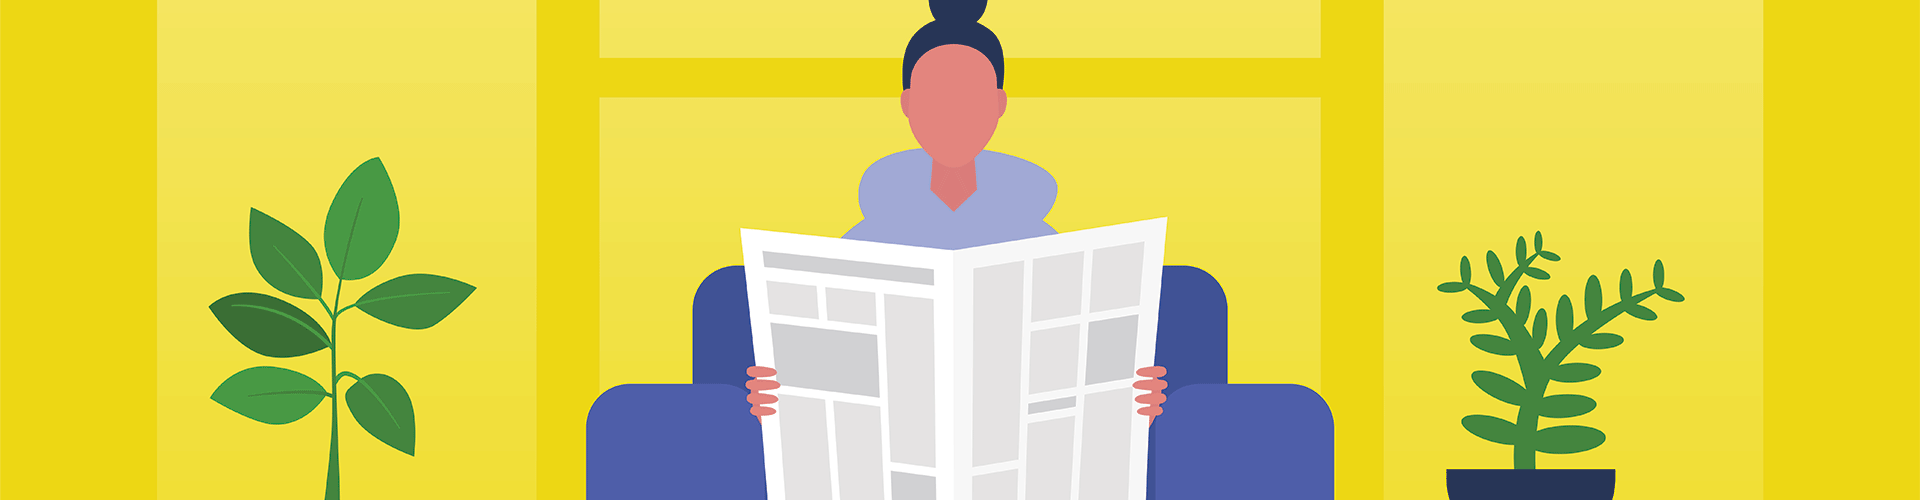 Illustration of young woman reading newspaper